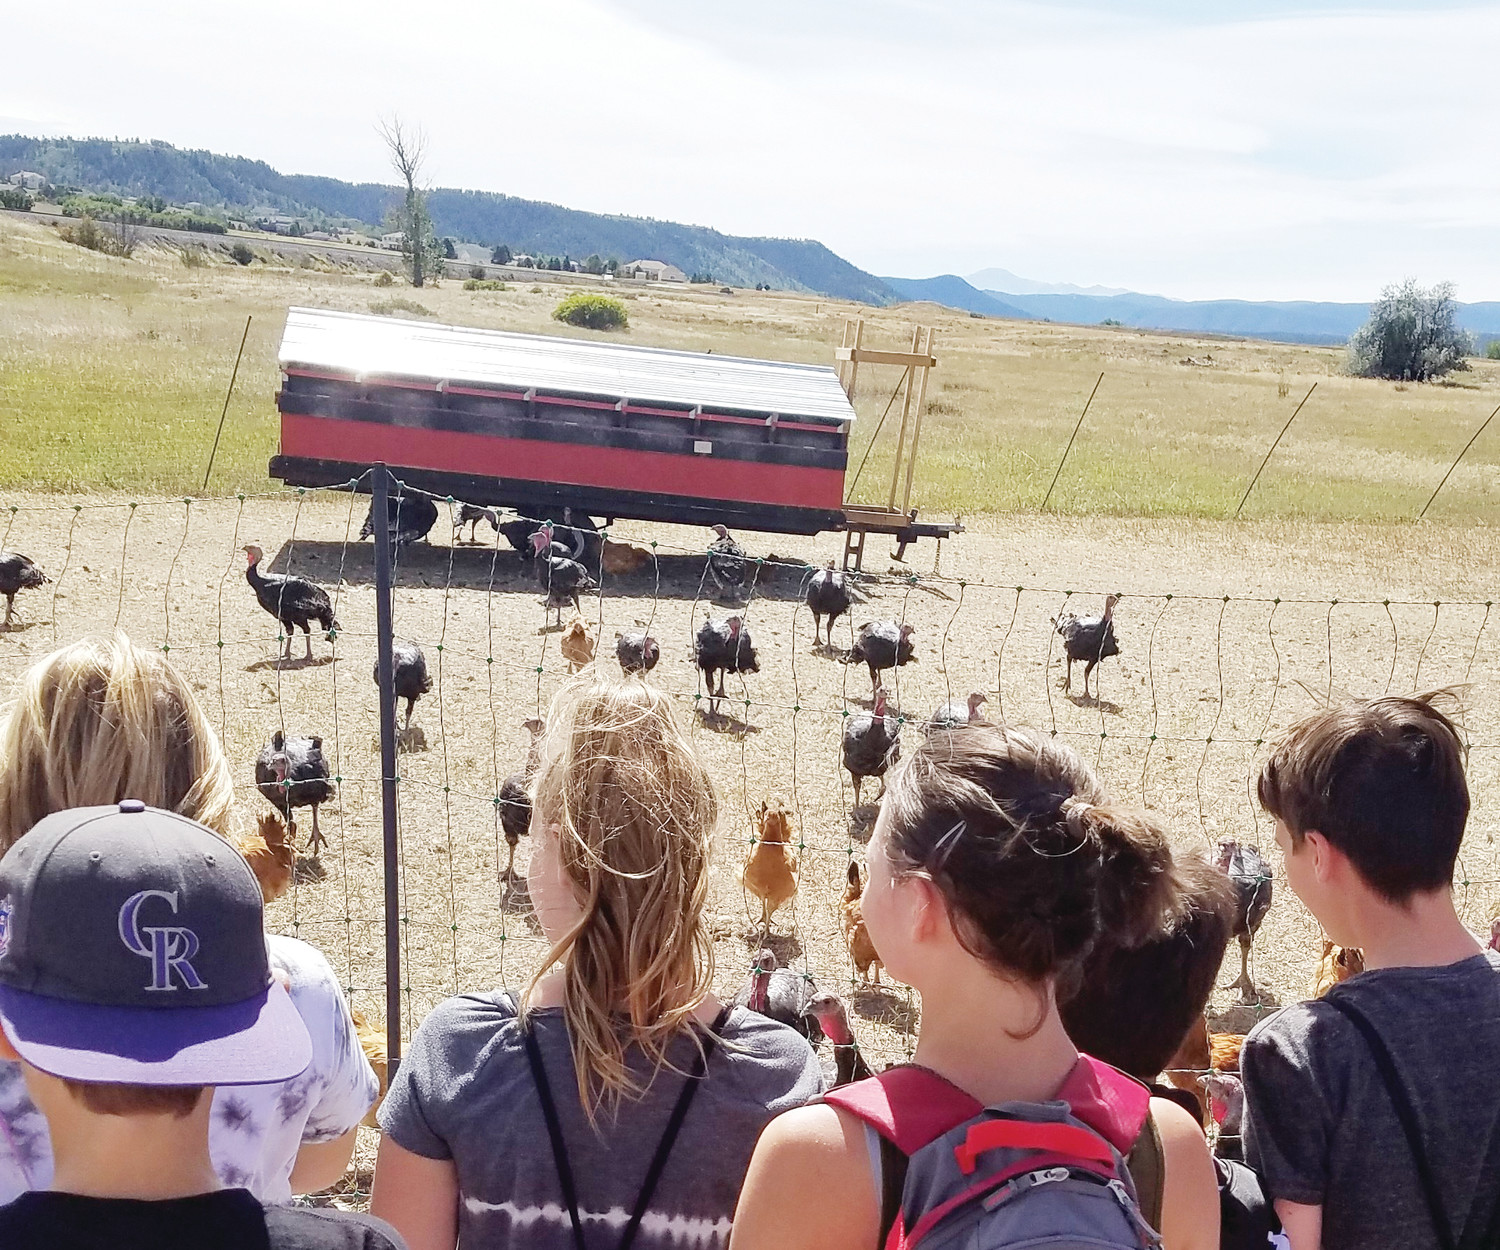 A group of students admire turkeys at the Colorado Agricultural Leadership Foundation's (CALF) Lowell Ranch. Lowell Ranch is a working, educational ranch in Castle Rock.